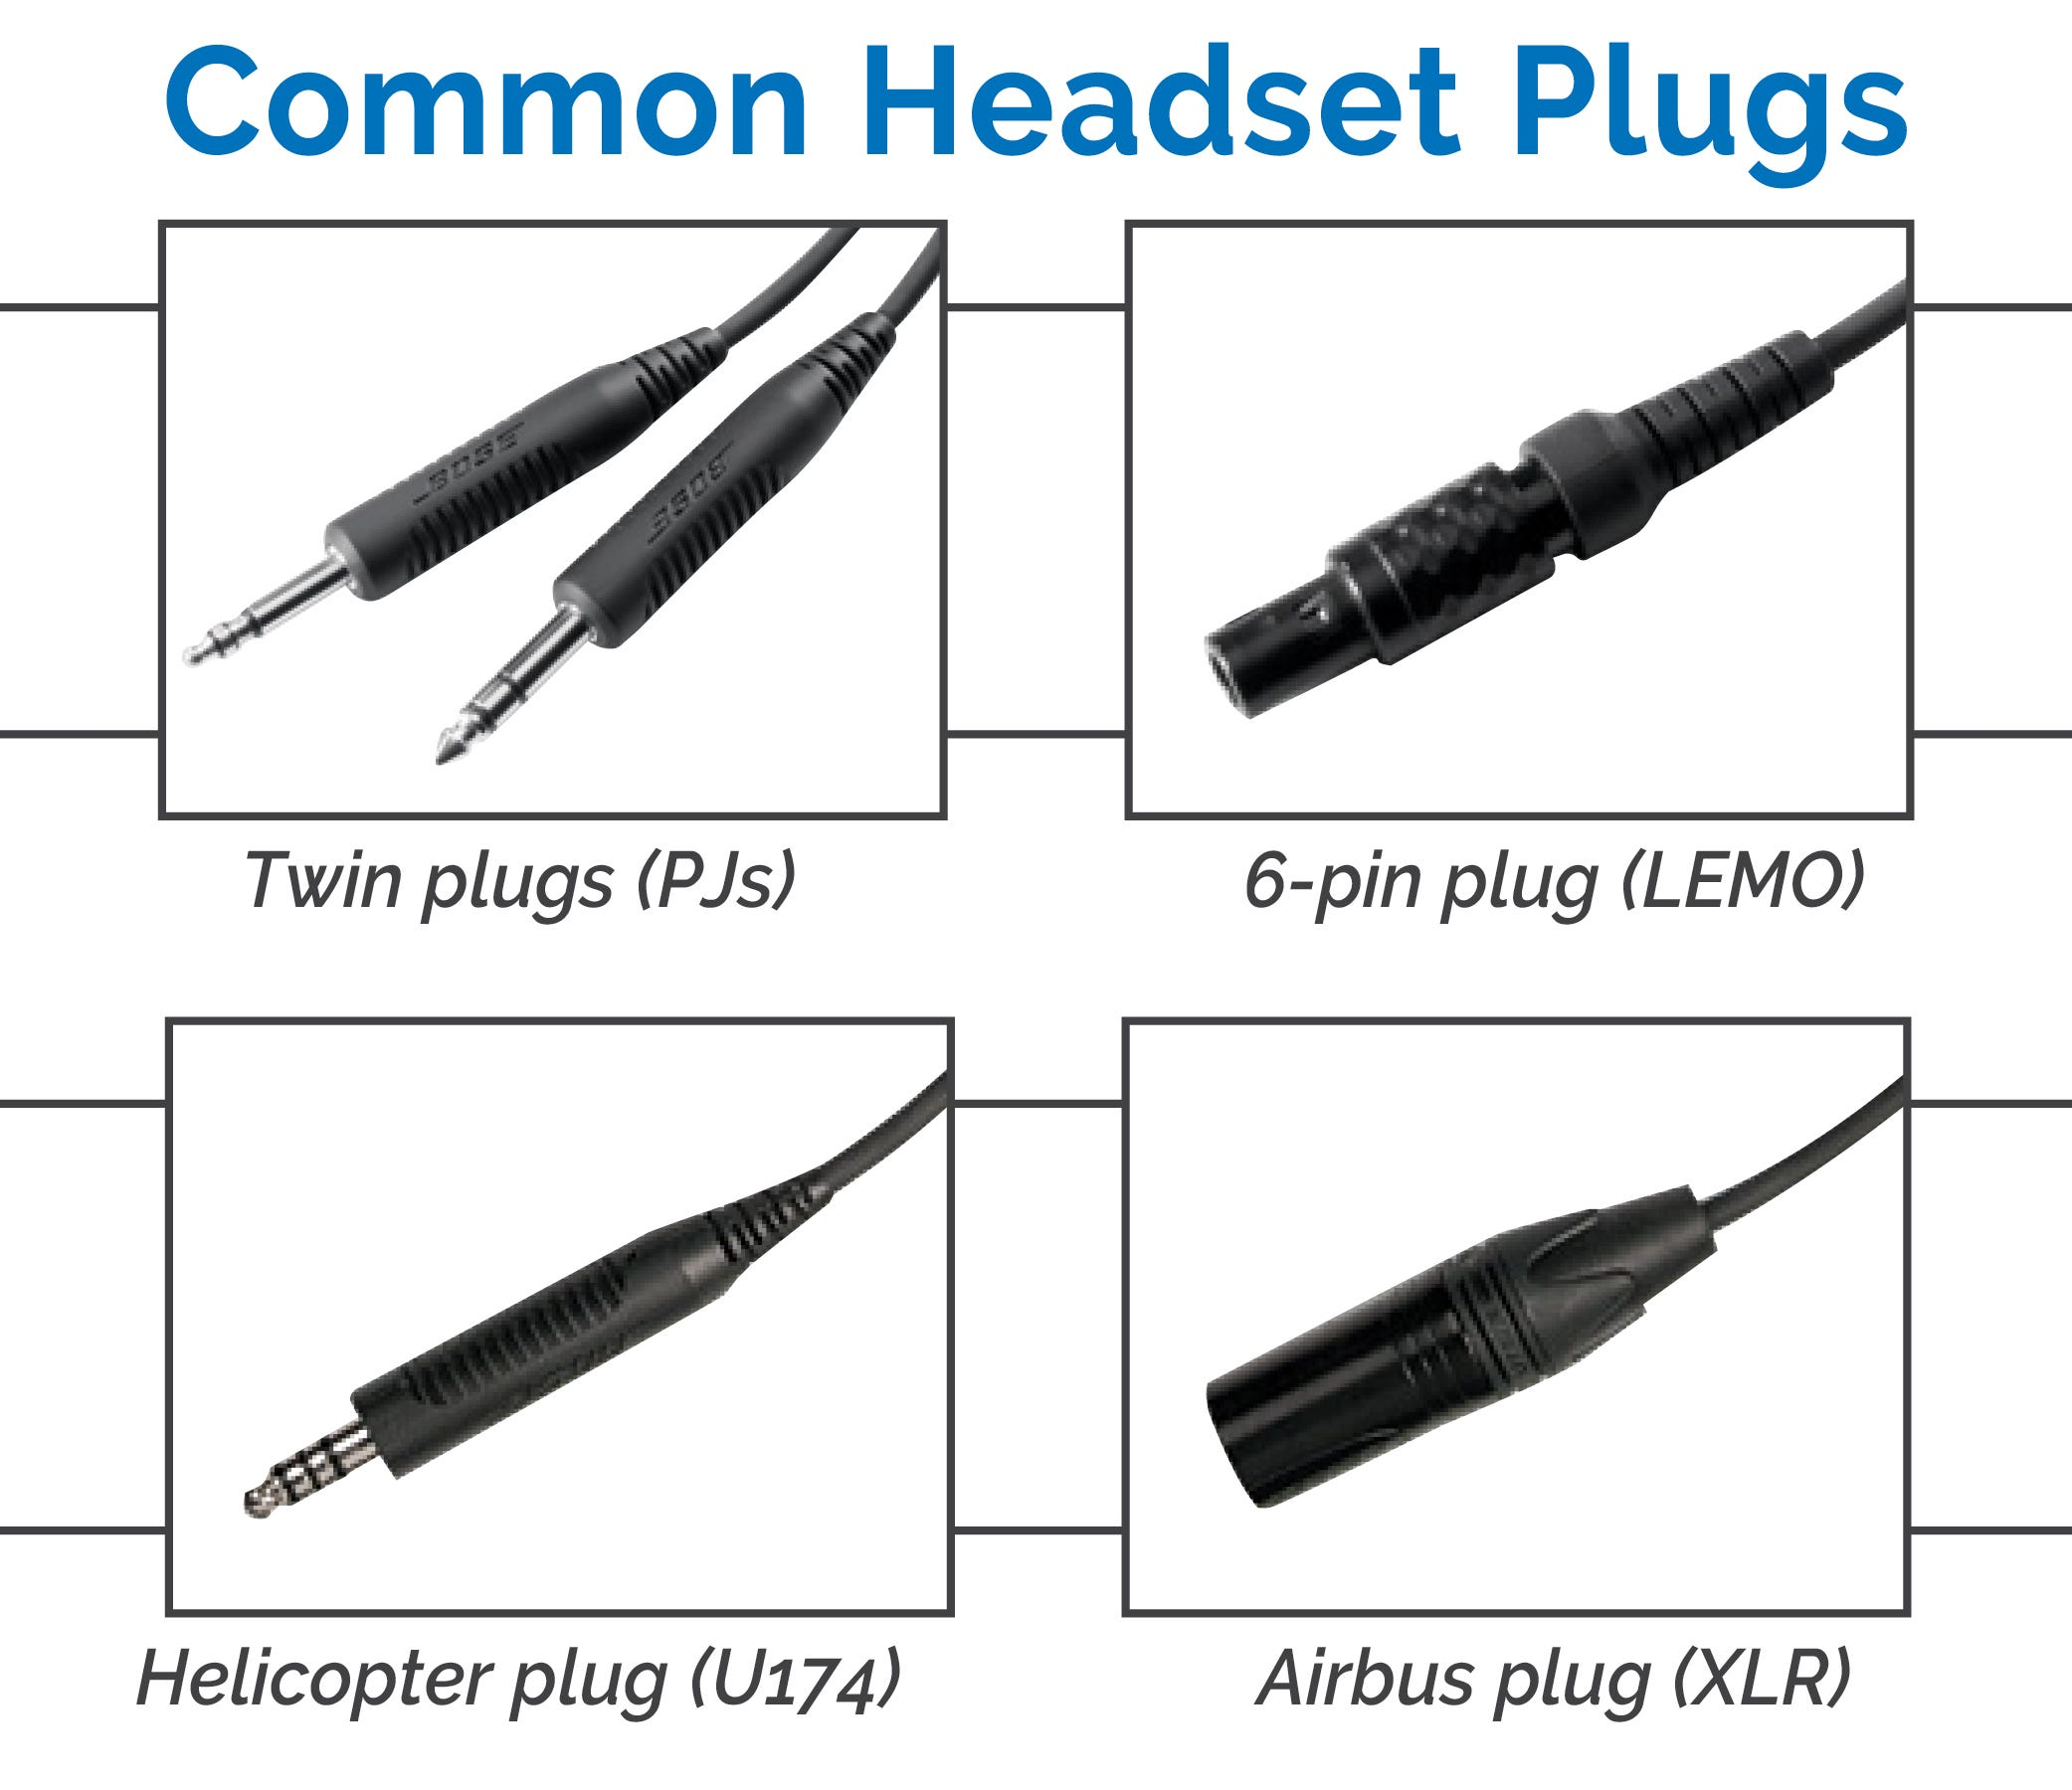 Headset cable options